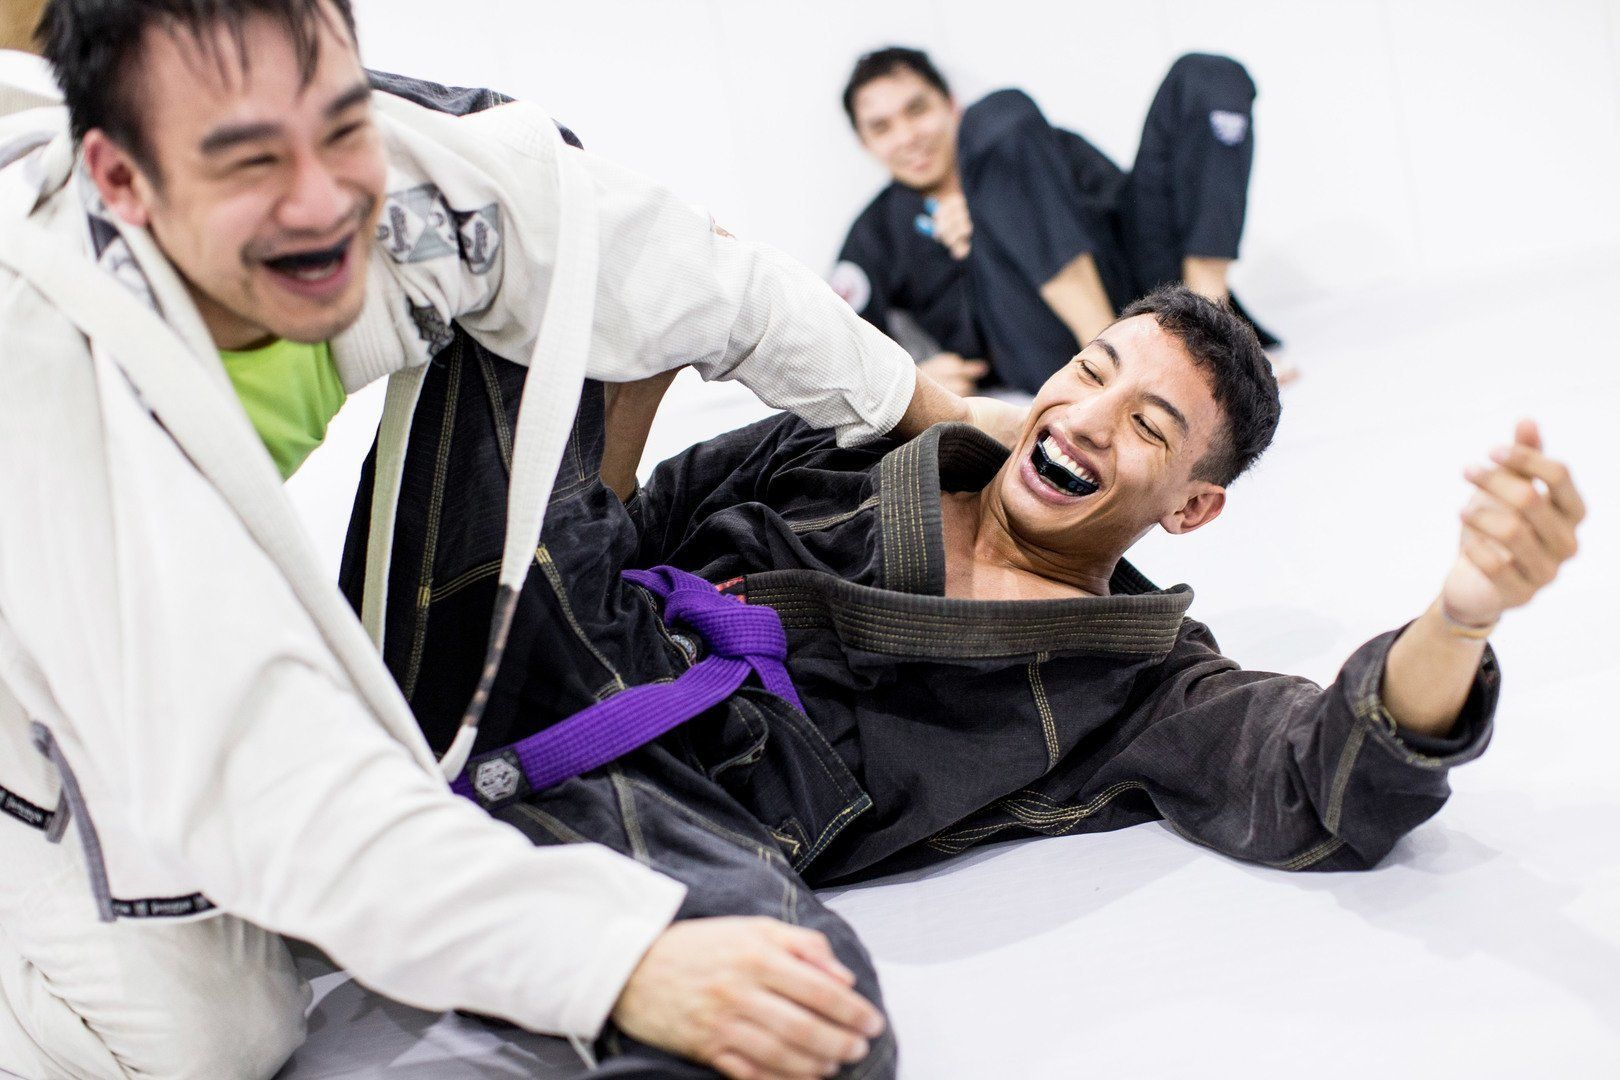 BJJ practitioners at a Singapore gym wear mouthguards